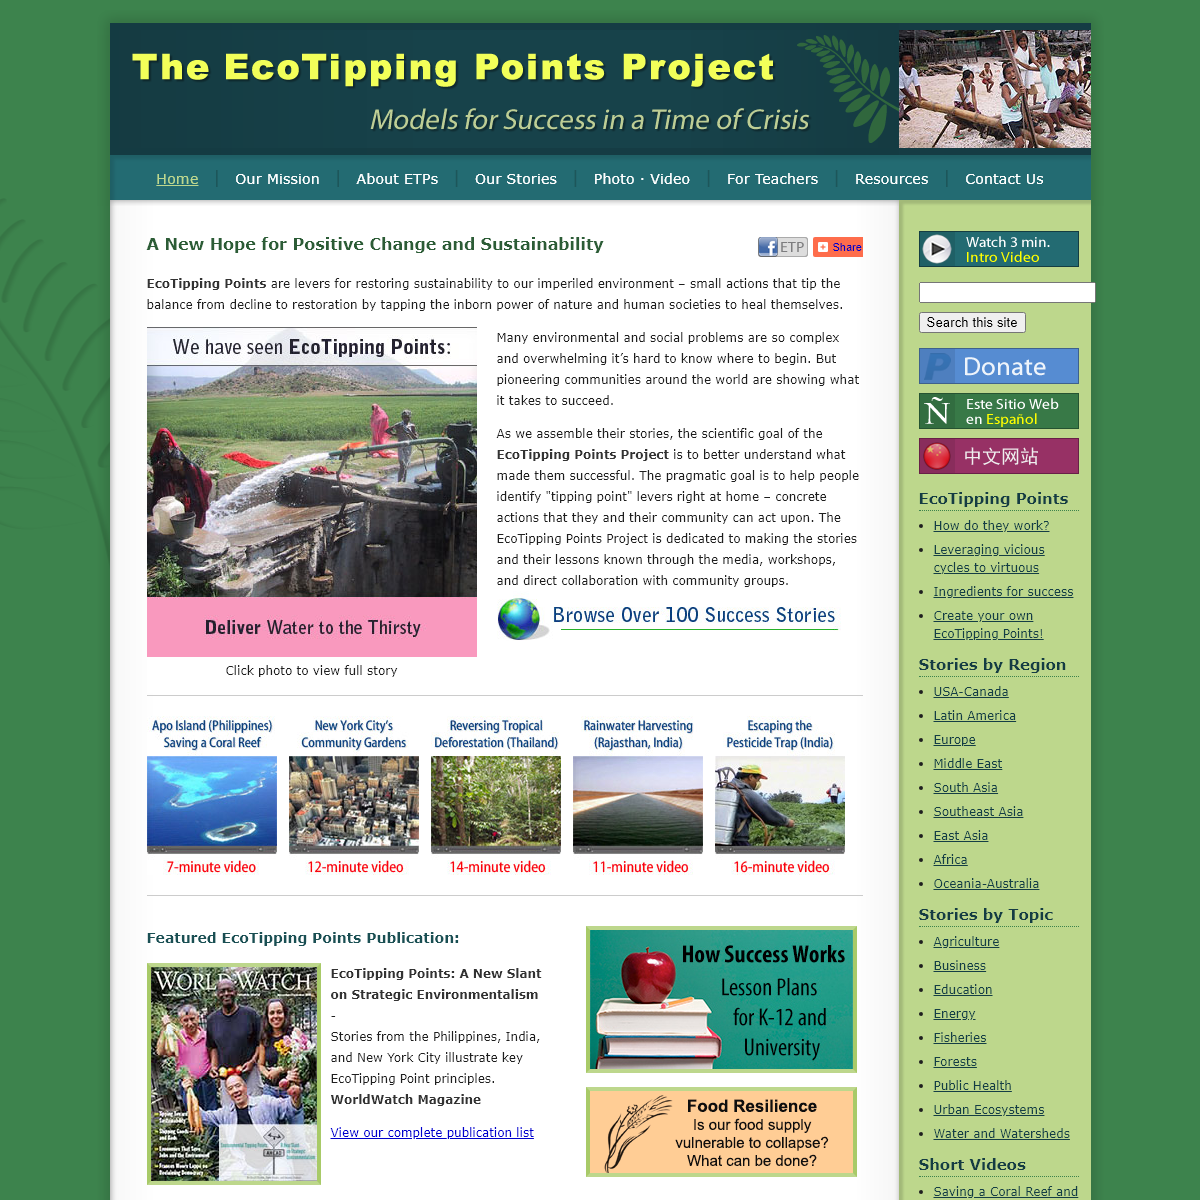 A New Hope for Positive Change and Sustainability - The Ecotipping Points Project